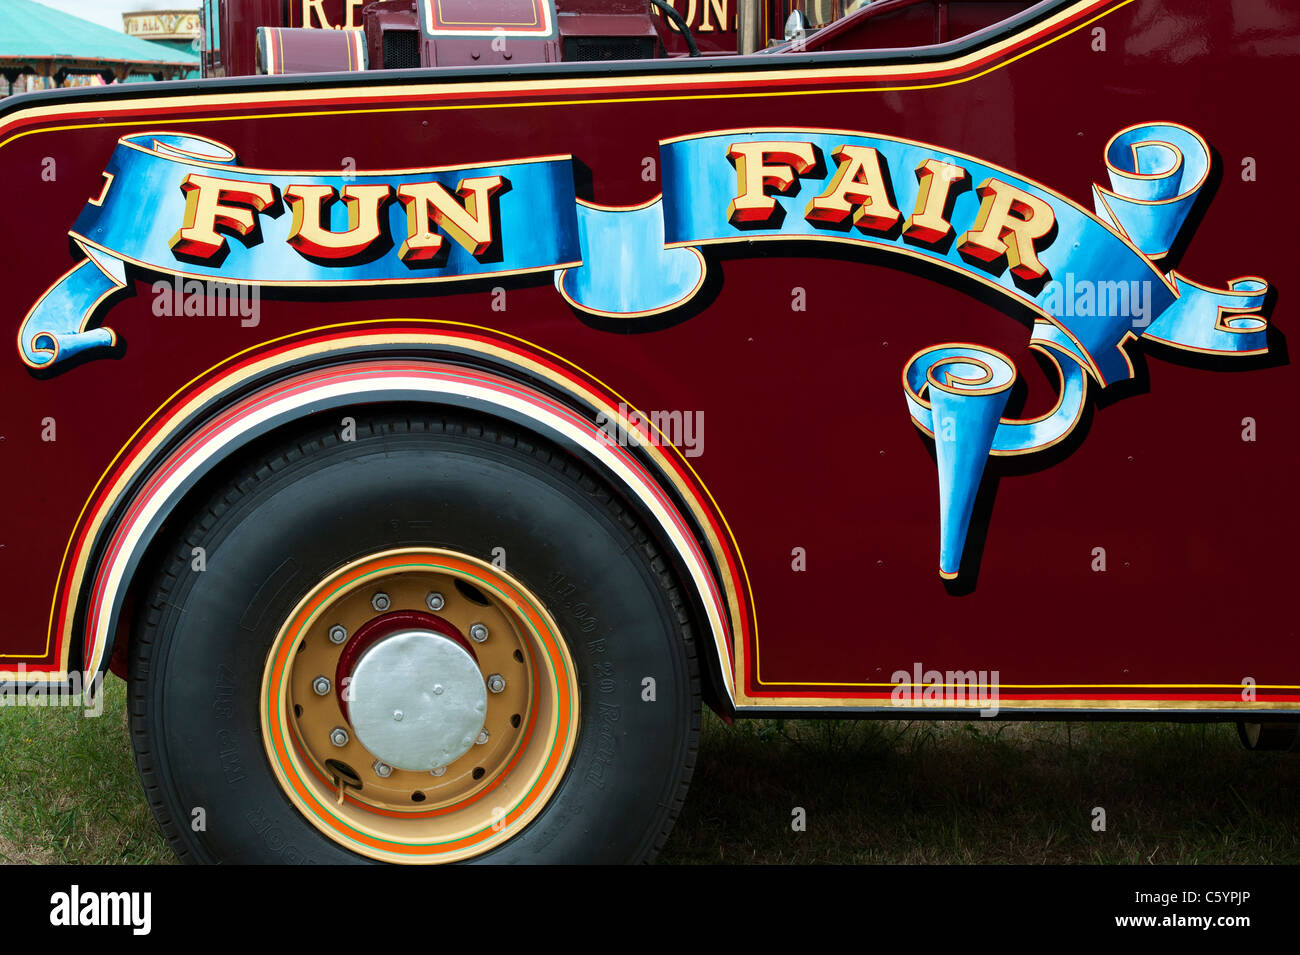 Fun Fair sign on Scammell highwayman truck. UK - Stock Image